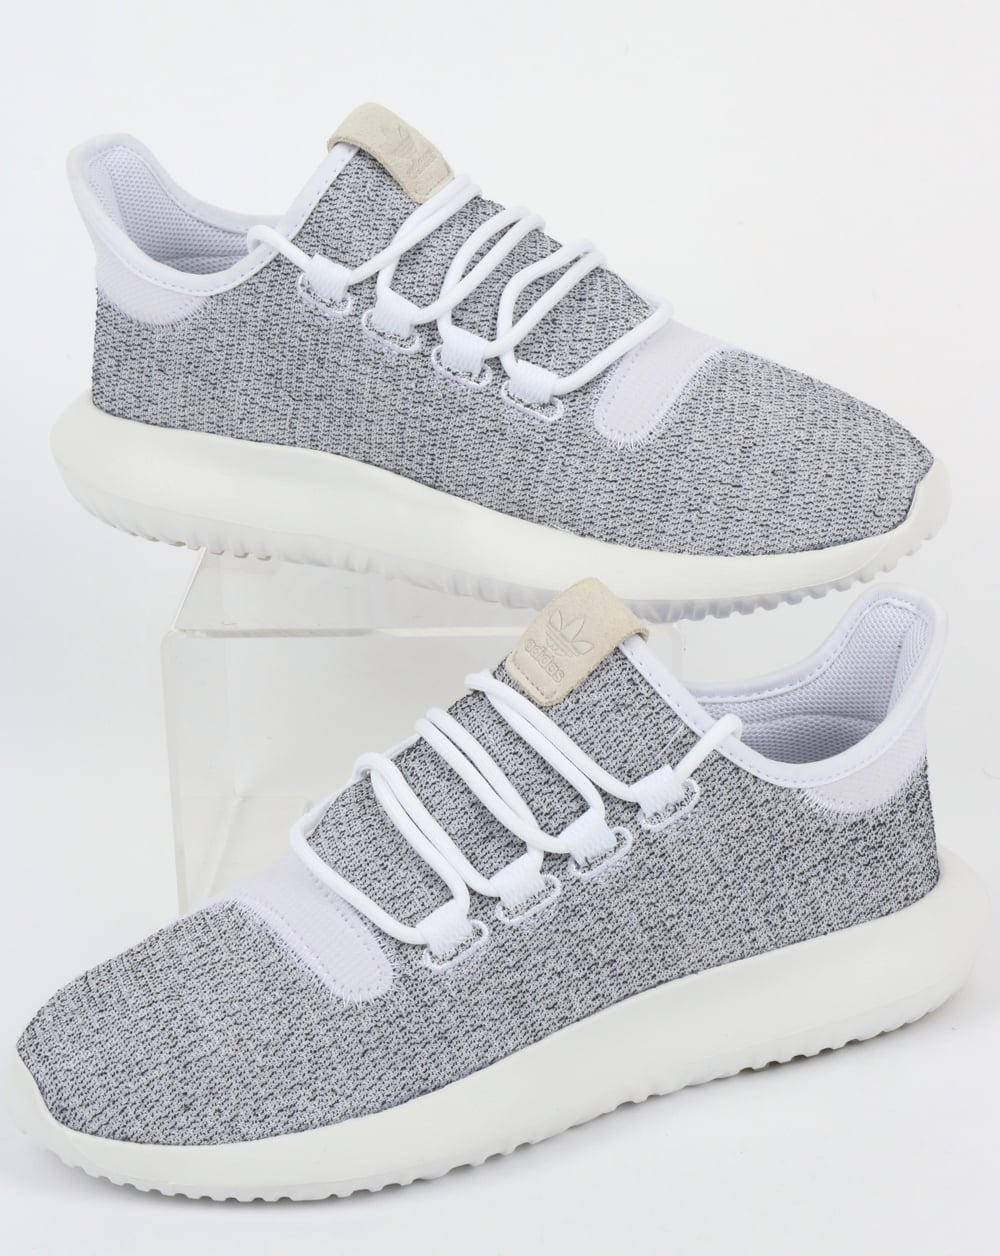 f4d5d94321c8 adidas Trainers Adidas Tubular Shadow Trainers White Grey